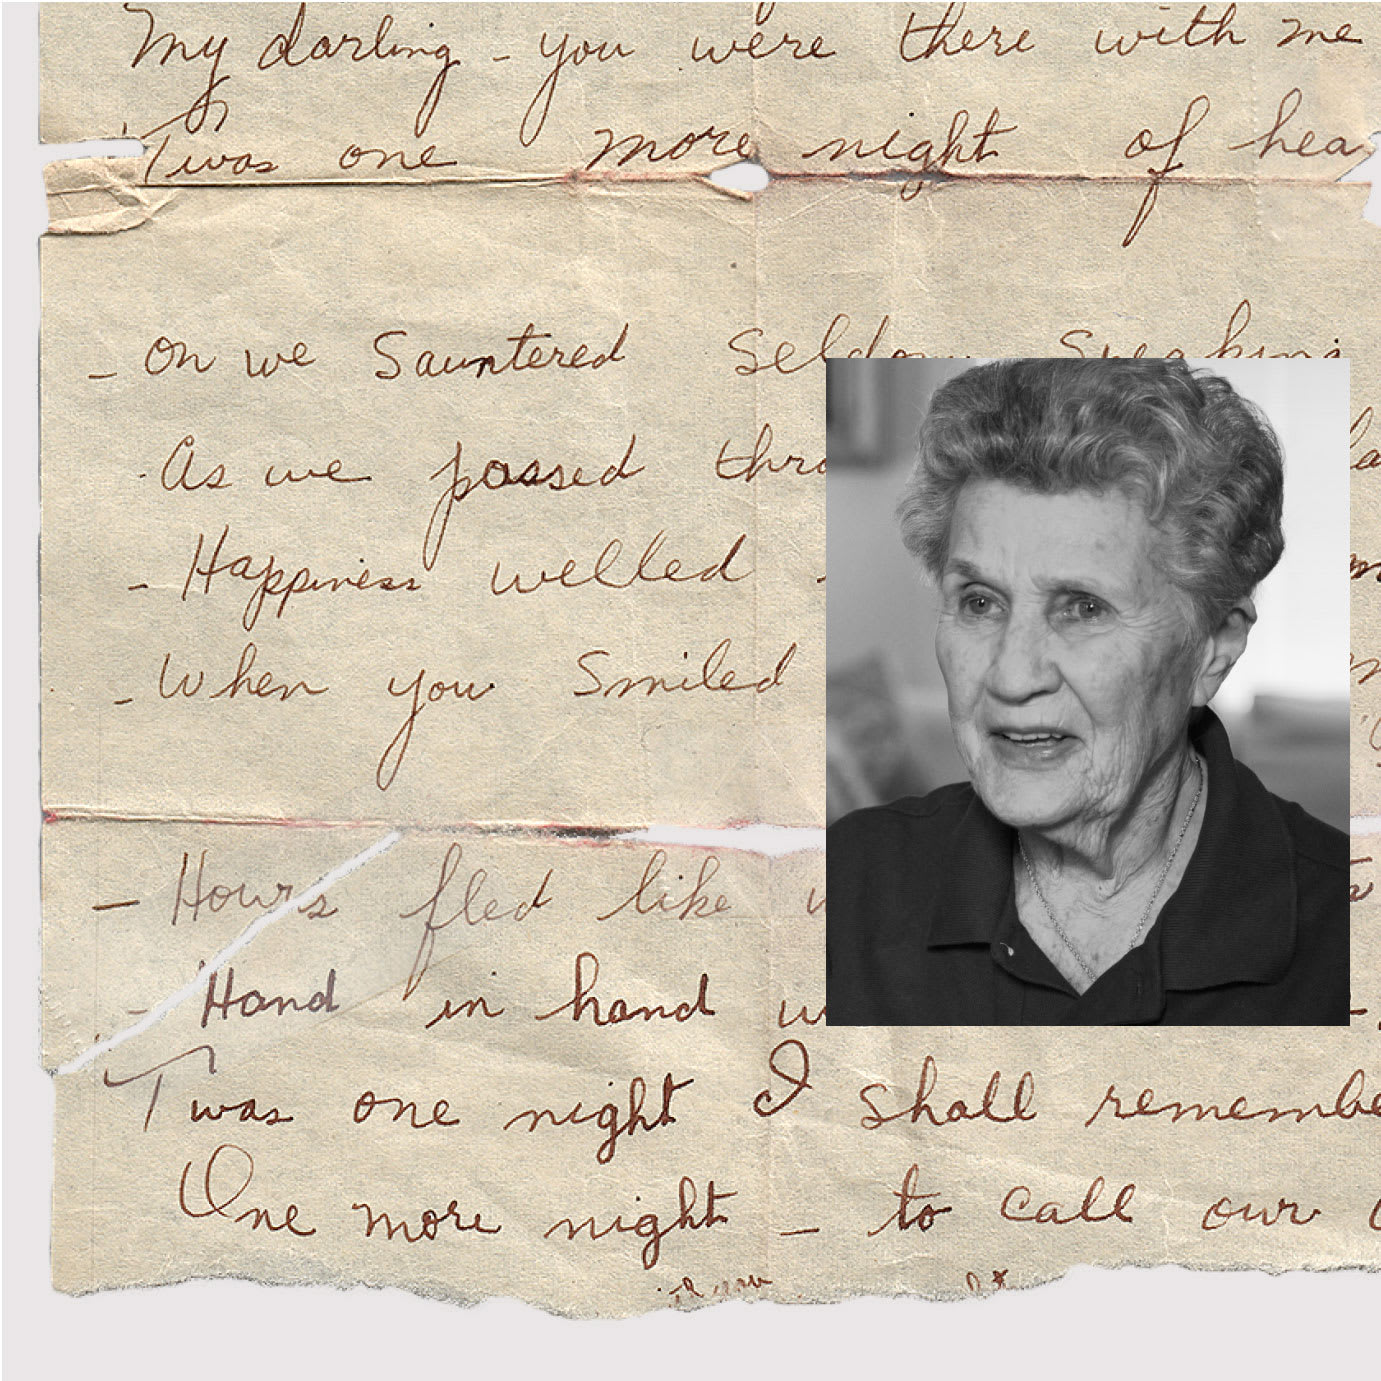 A collage of a photo of an elderly woman and a handwritten letter.